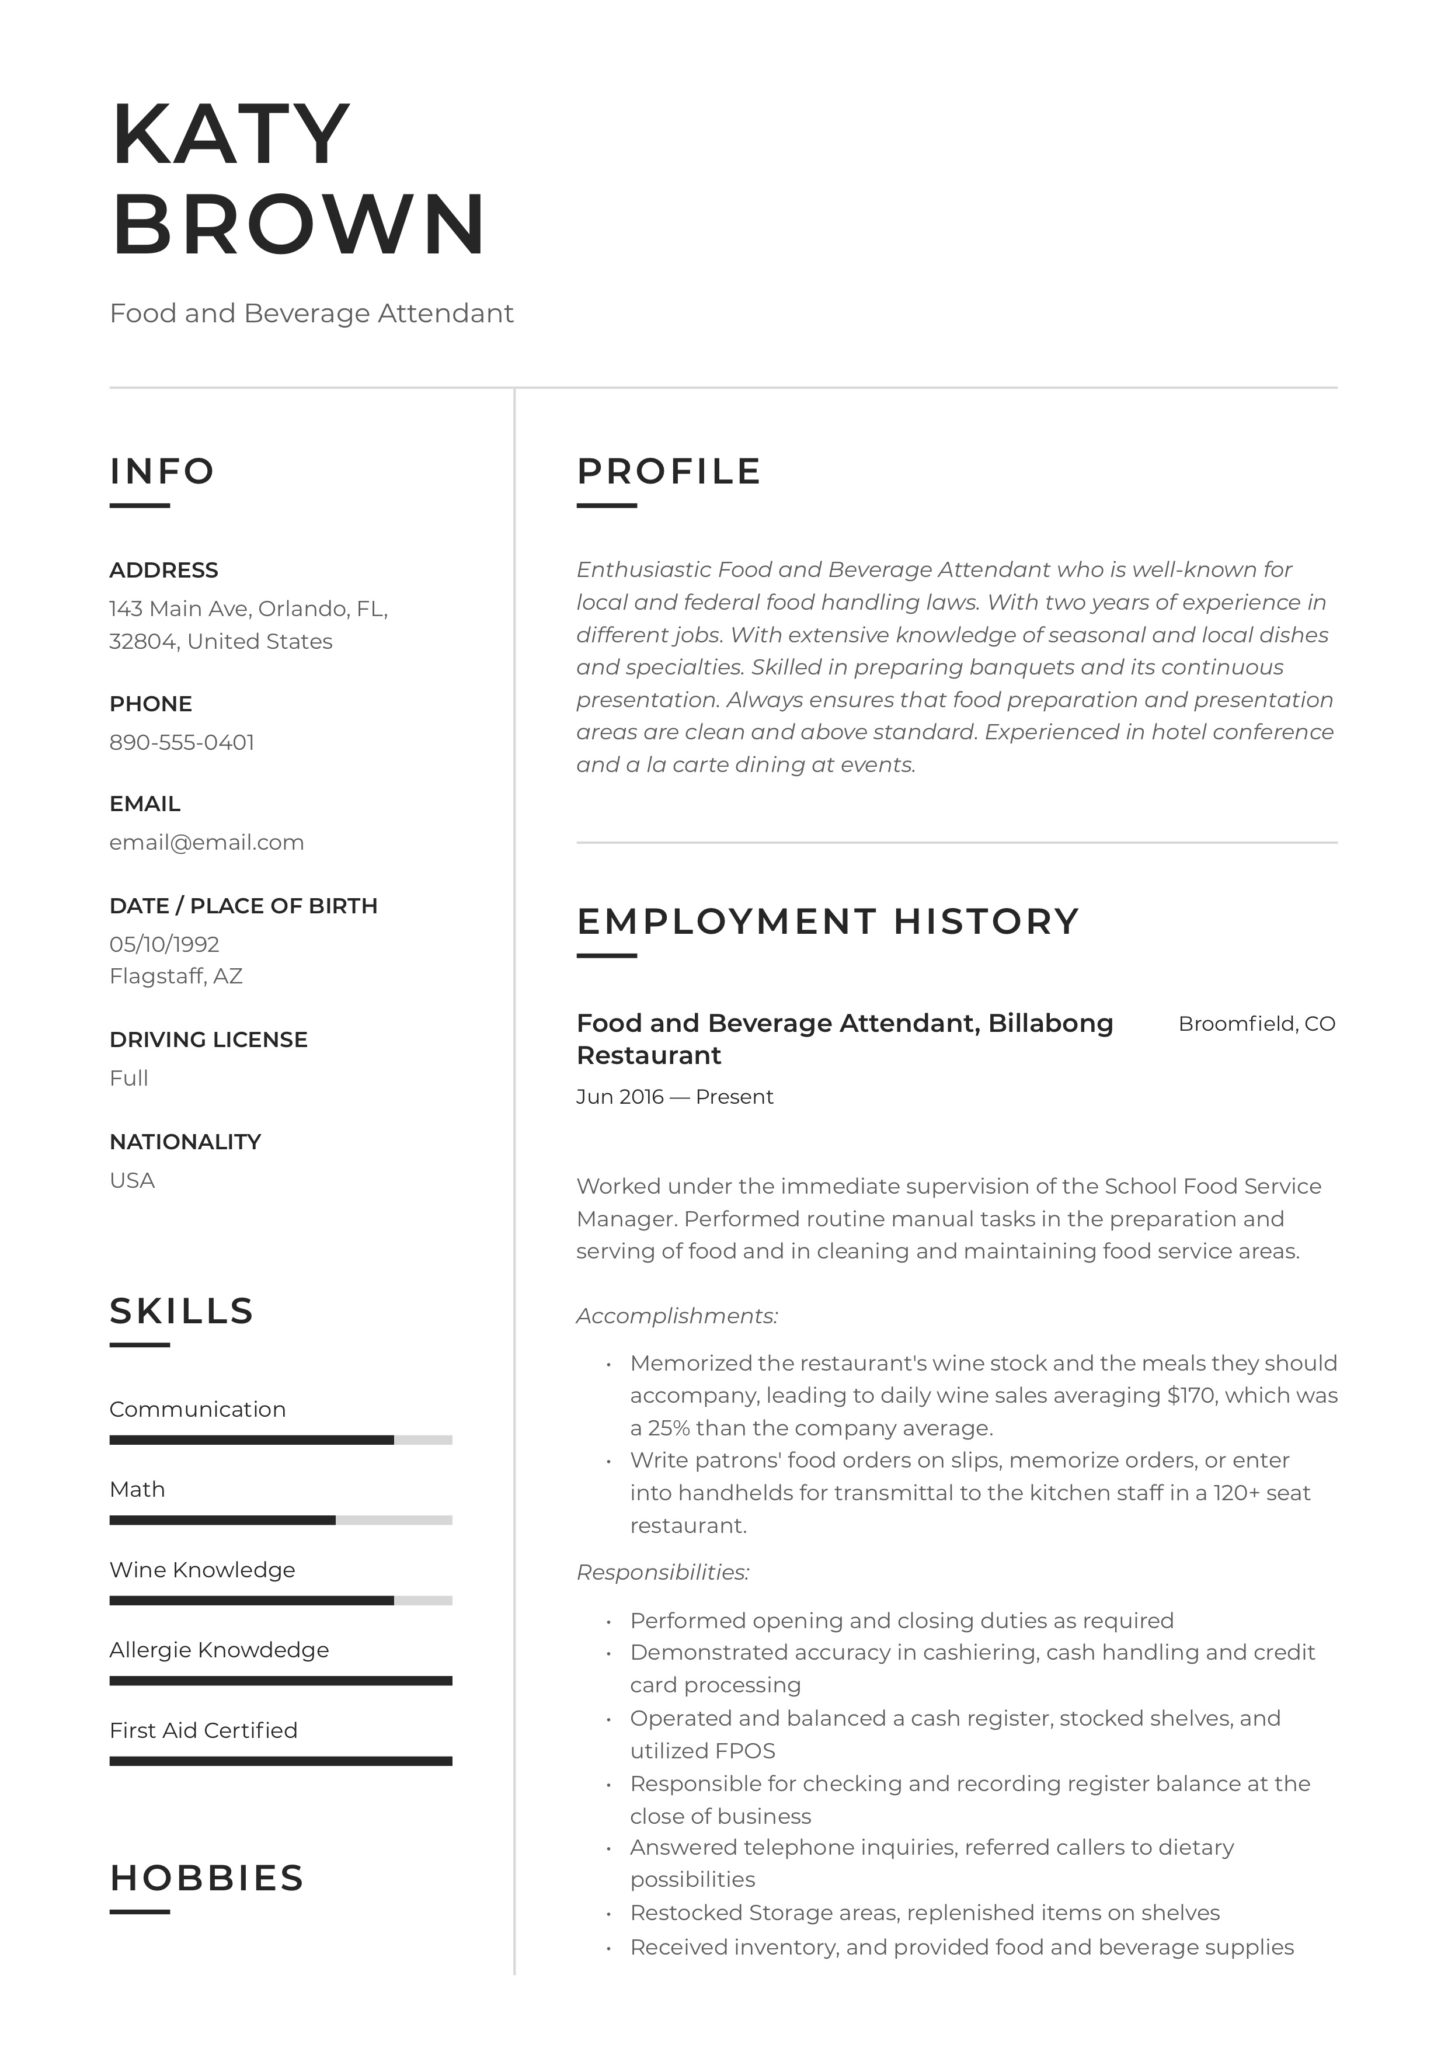 food and beverage attendant resume examples word pdf writing for hotel industry scaled Resume Resume Writing For Hotel Industry